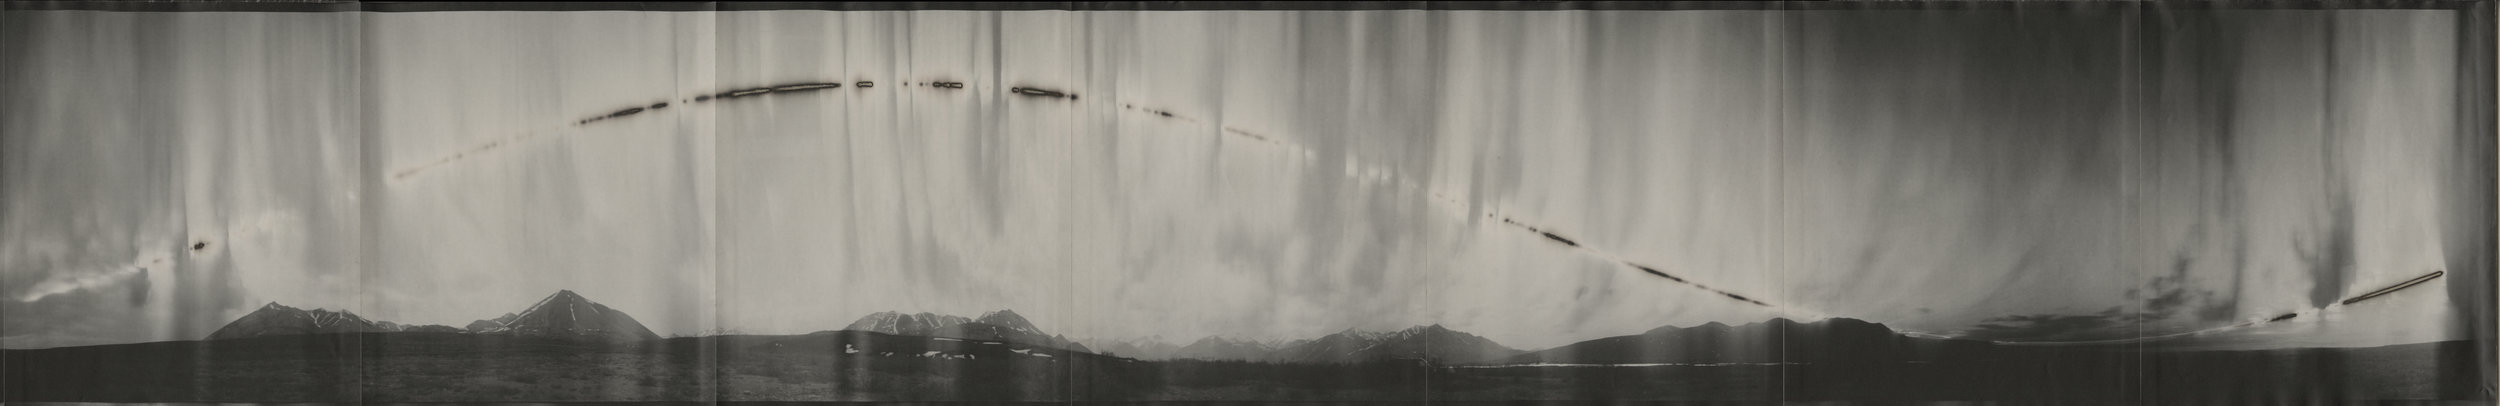 Chris McCaw ,  Cirkut #6 (Mostly cloudy Galbraith Lake, Alaska, within the Arctic Circle, 28 hours),  2015   Unique Gelatin Silver Paper Negative, 10 x 60 inches  Image courtesy of Candela Books and Gallery